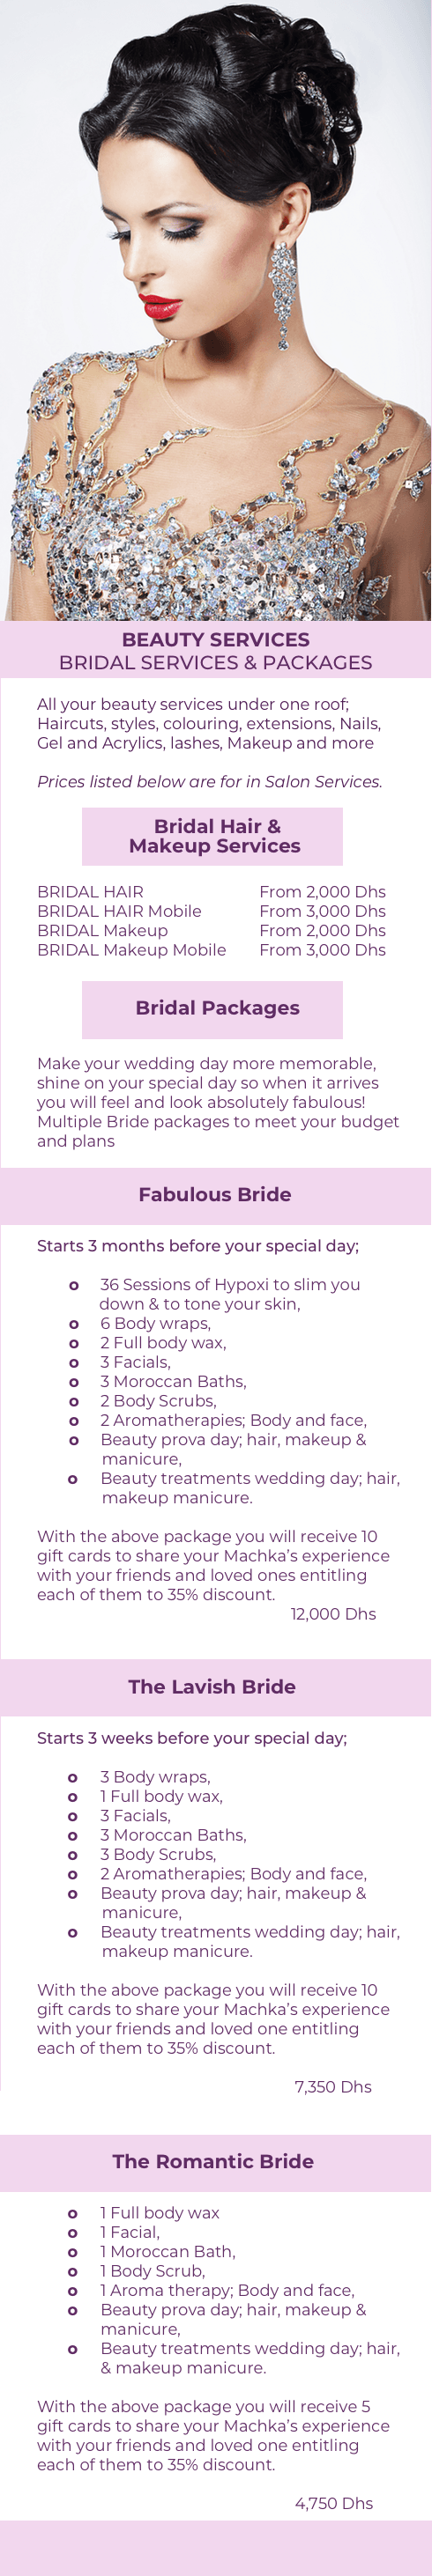 Machka Beauty & Body Design Bridal Packages - Bride beauty salon treatments - Shine on your wedding day - Ladies only Dubai beauty Salon